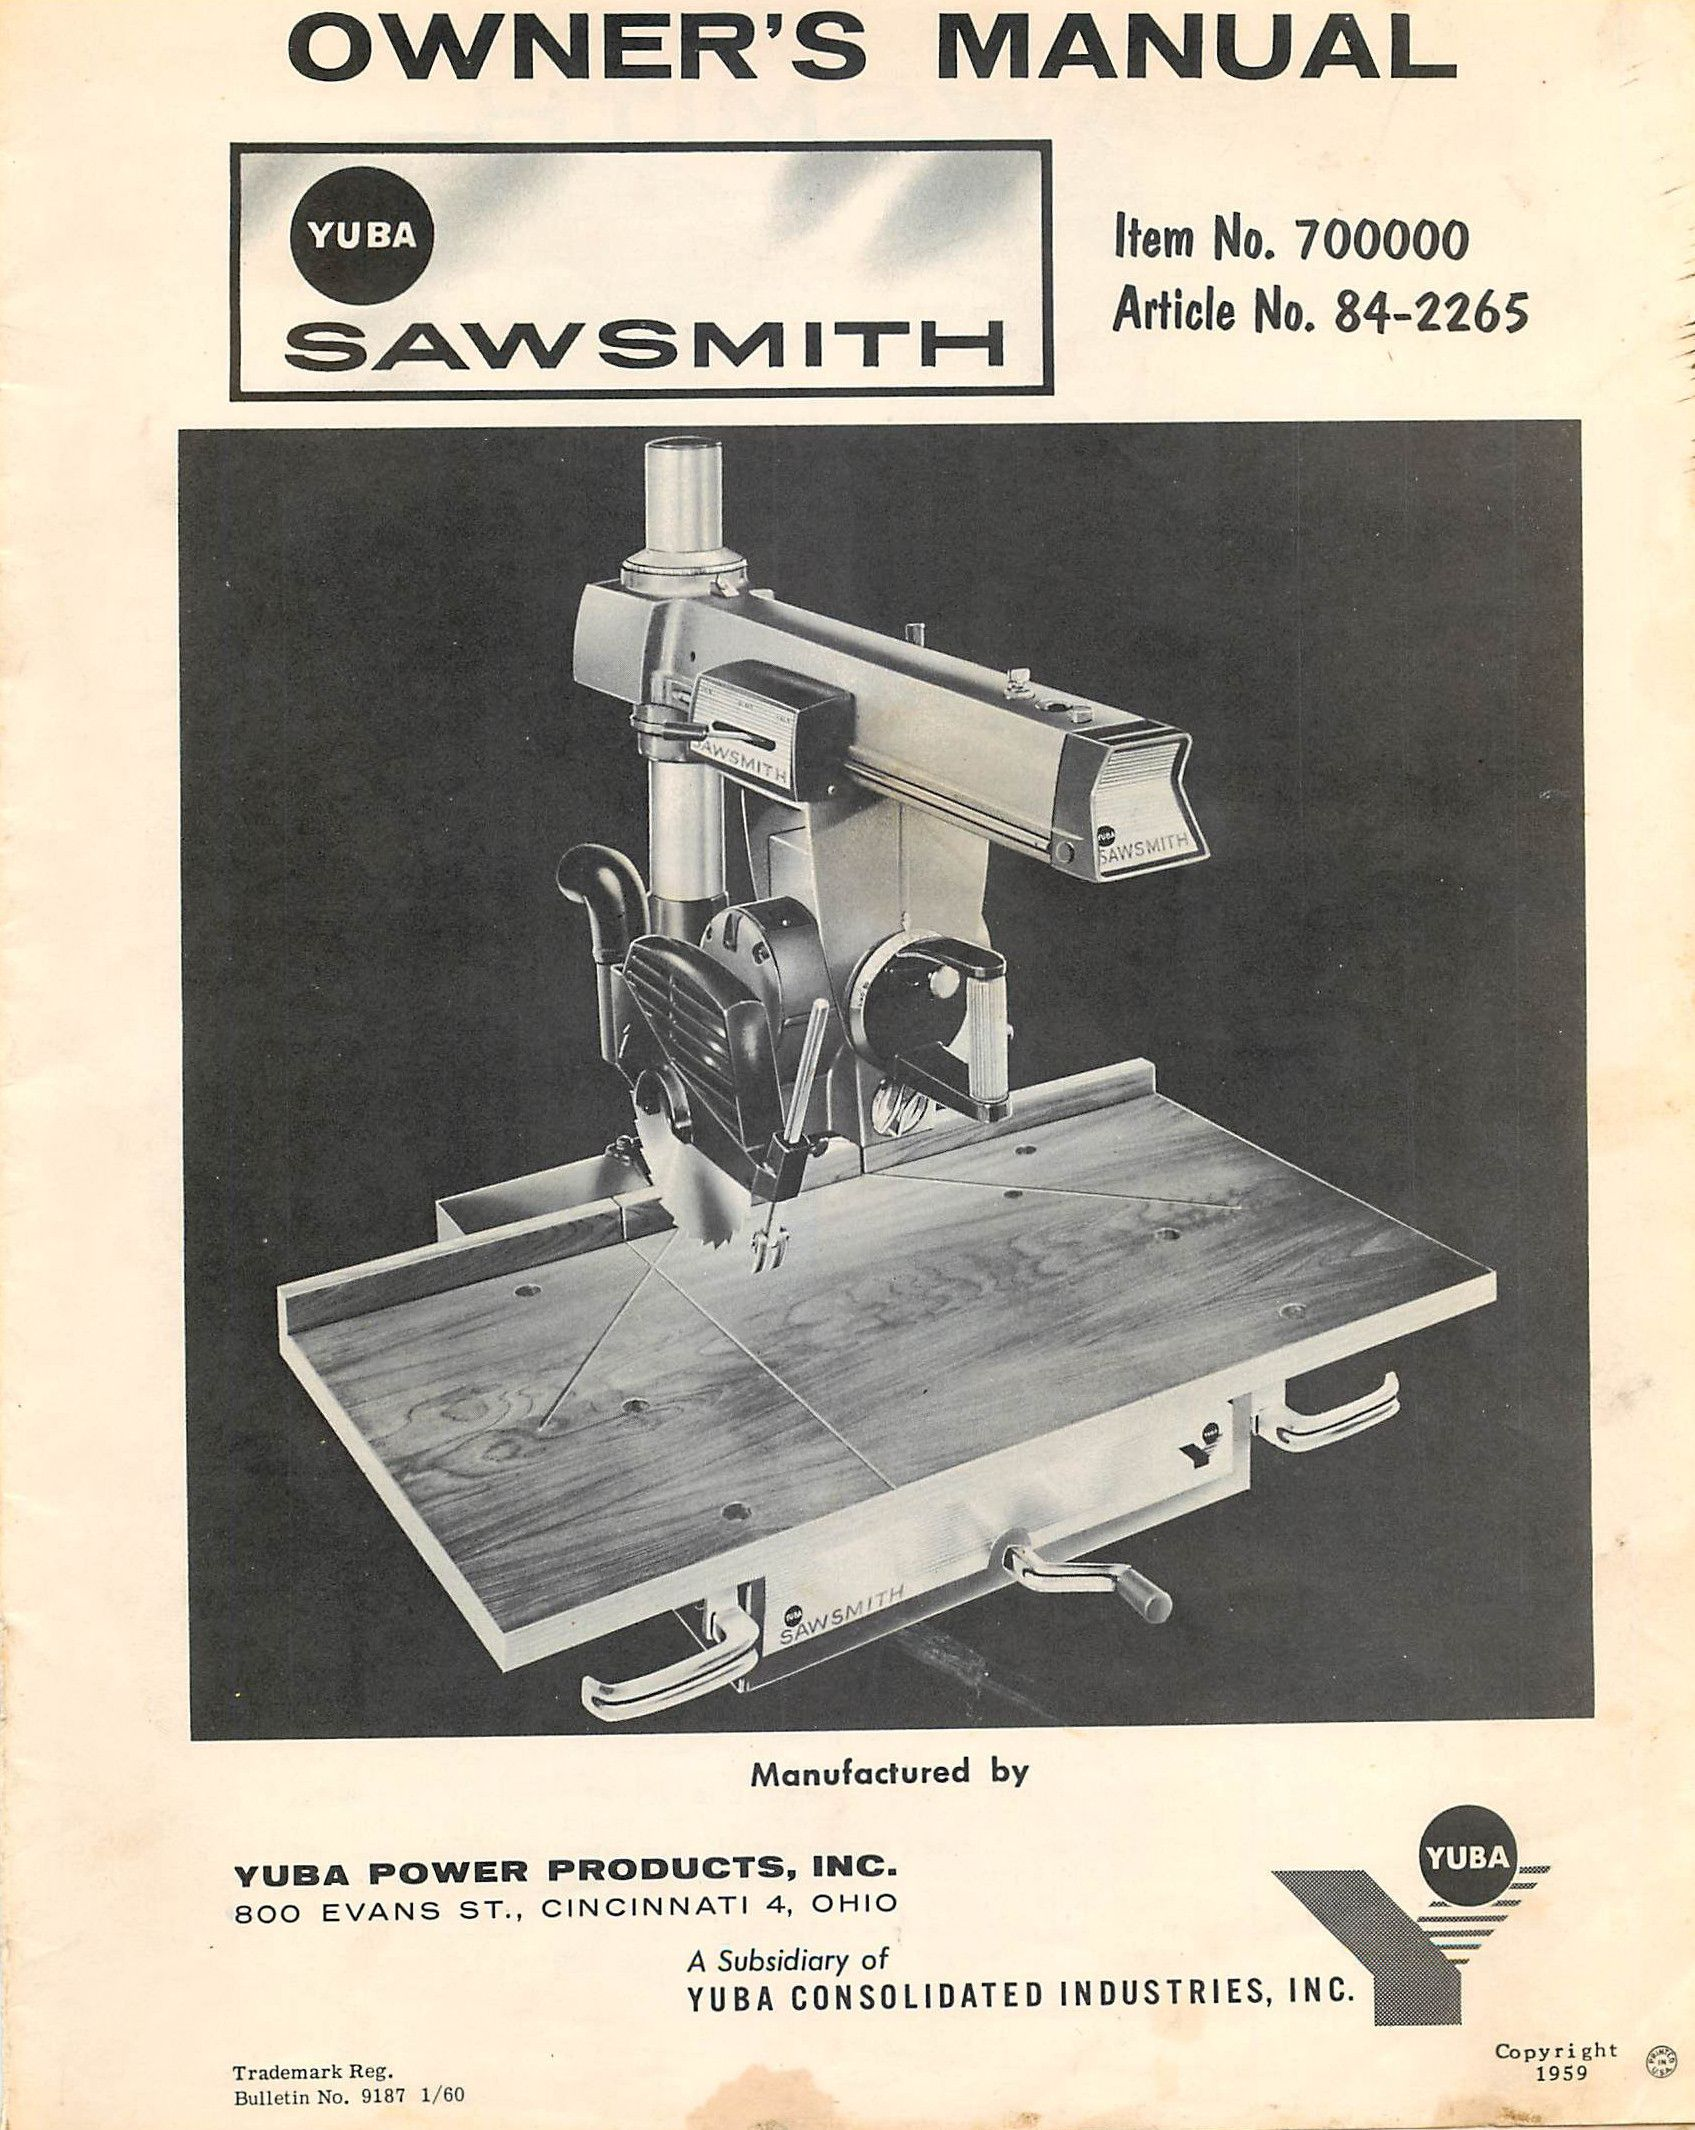 Sawsmith Radial Arm Saw Owners Manual and Assembly Instructions